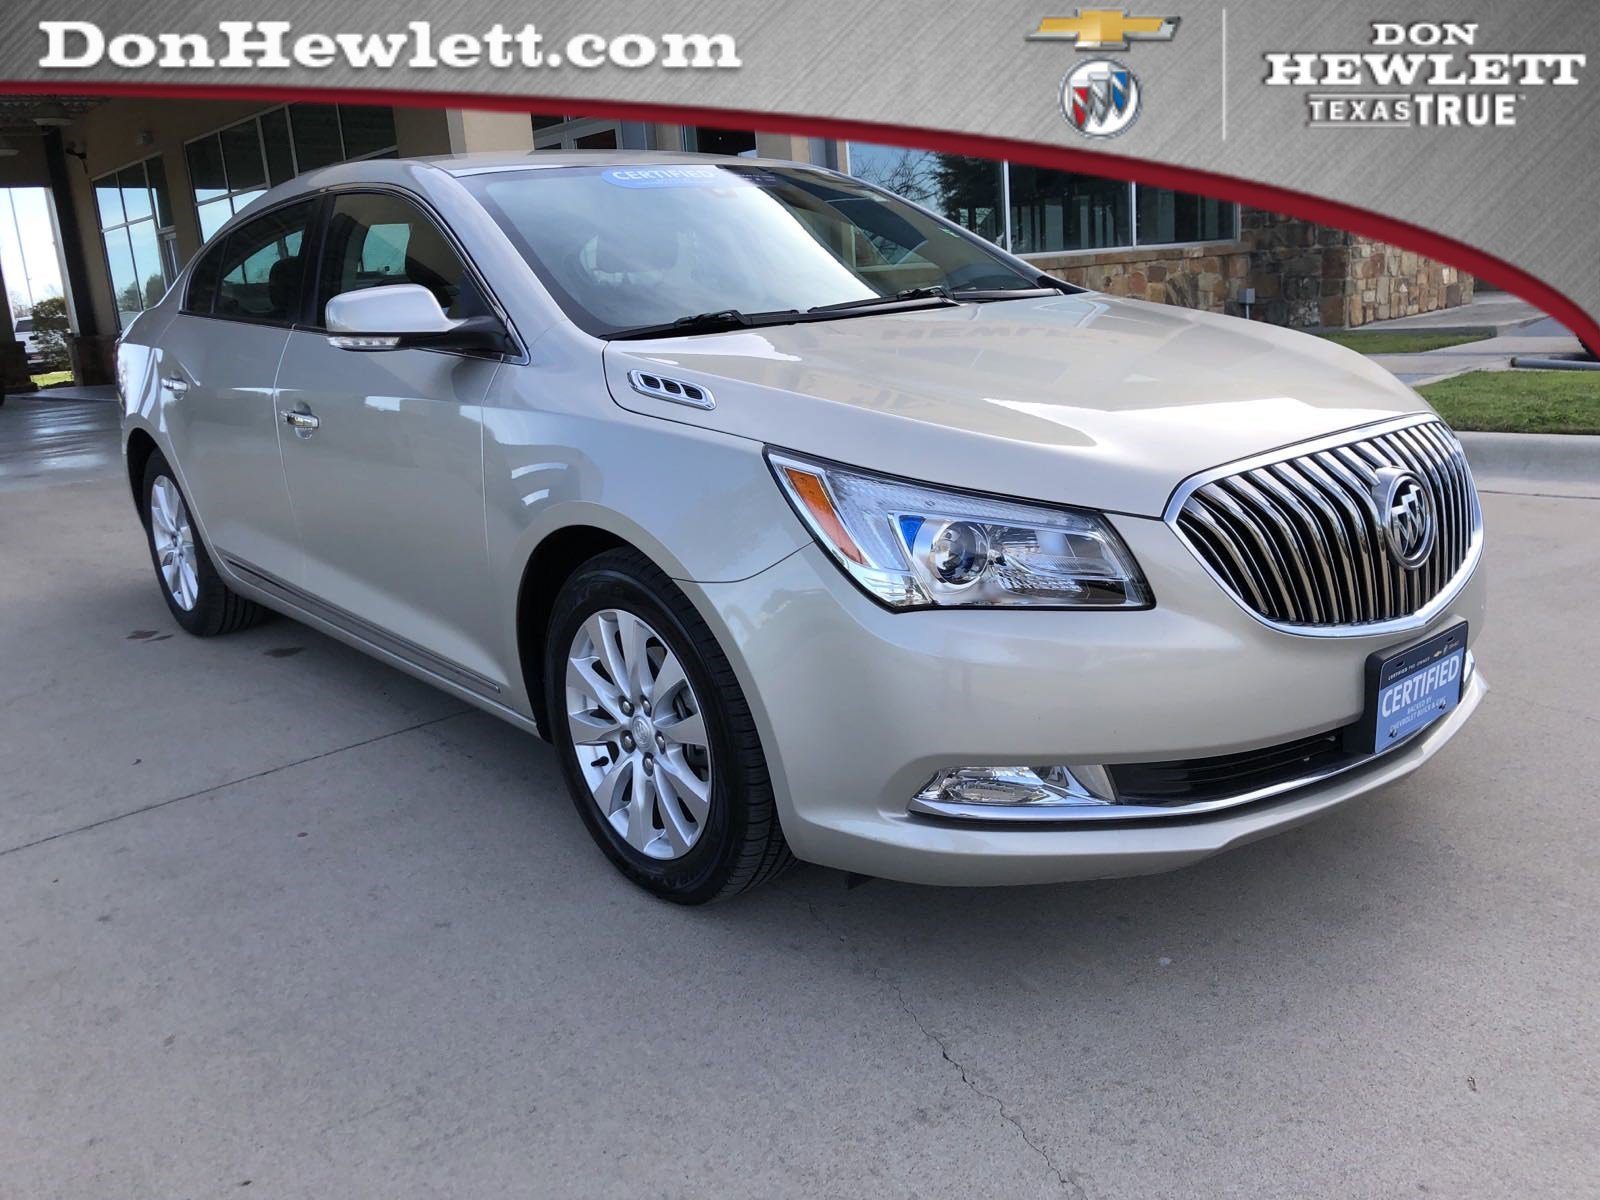 2016 Buick LaCrosse Leather image